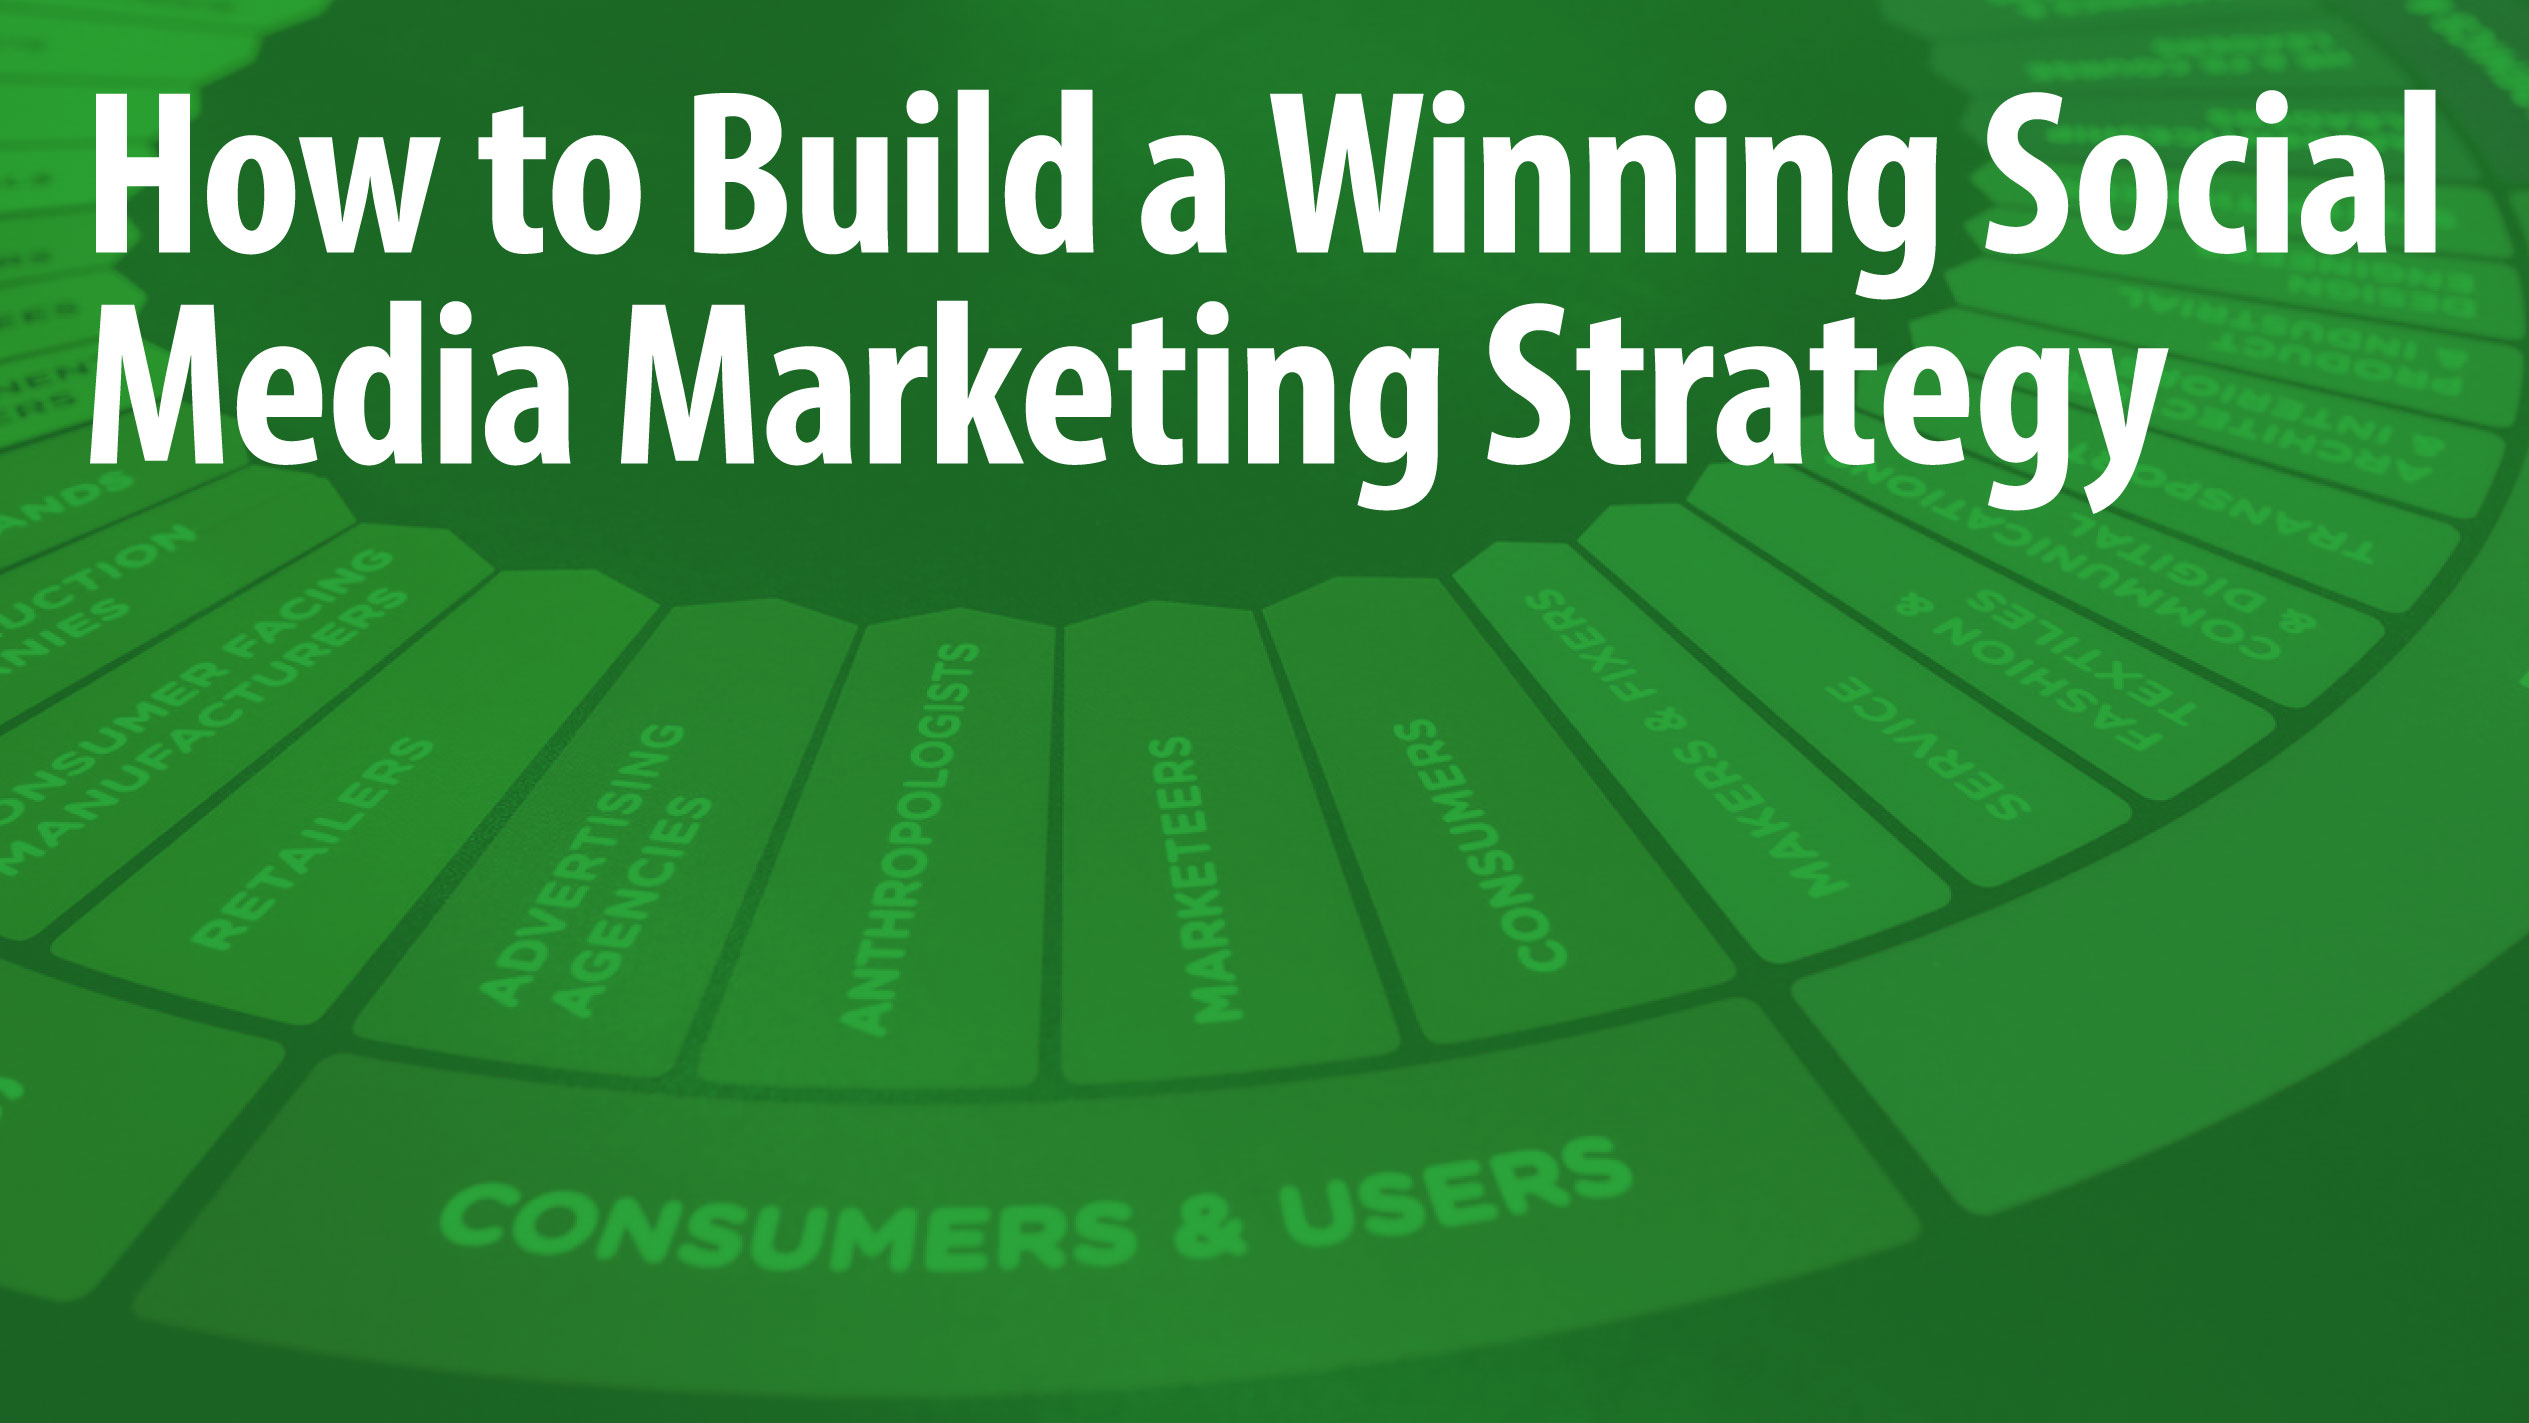 How to Build a Winning Social Media Marketing Strategy